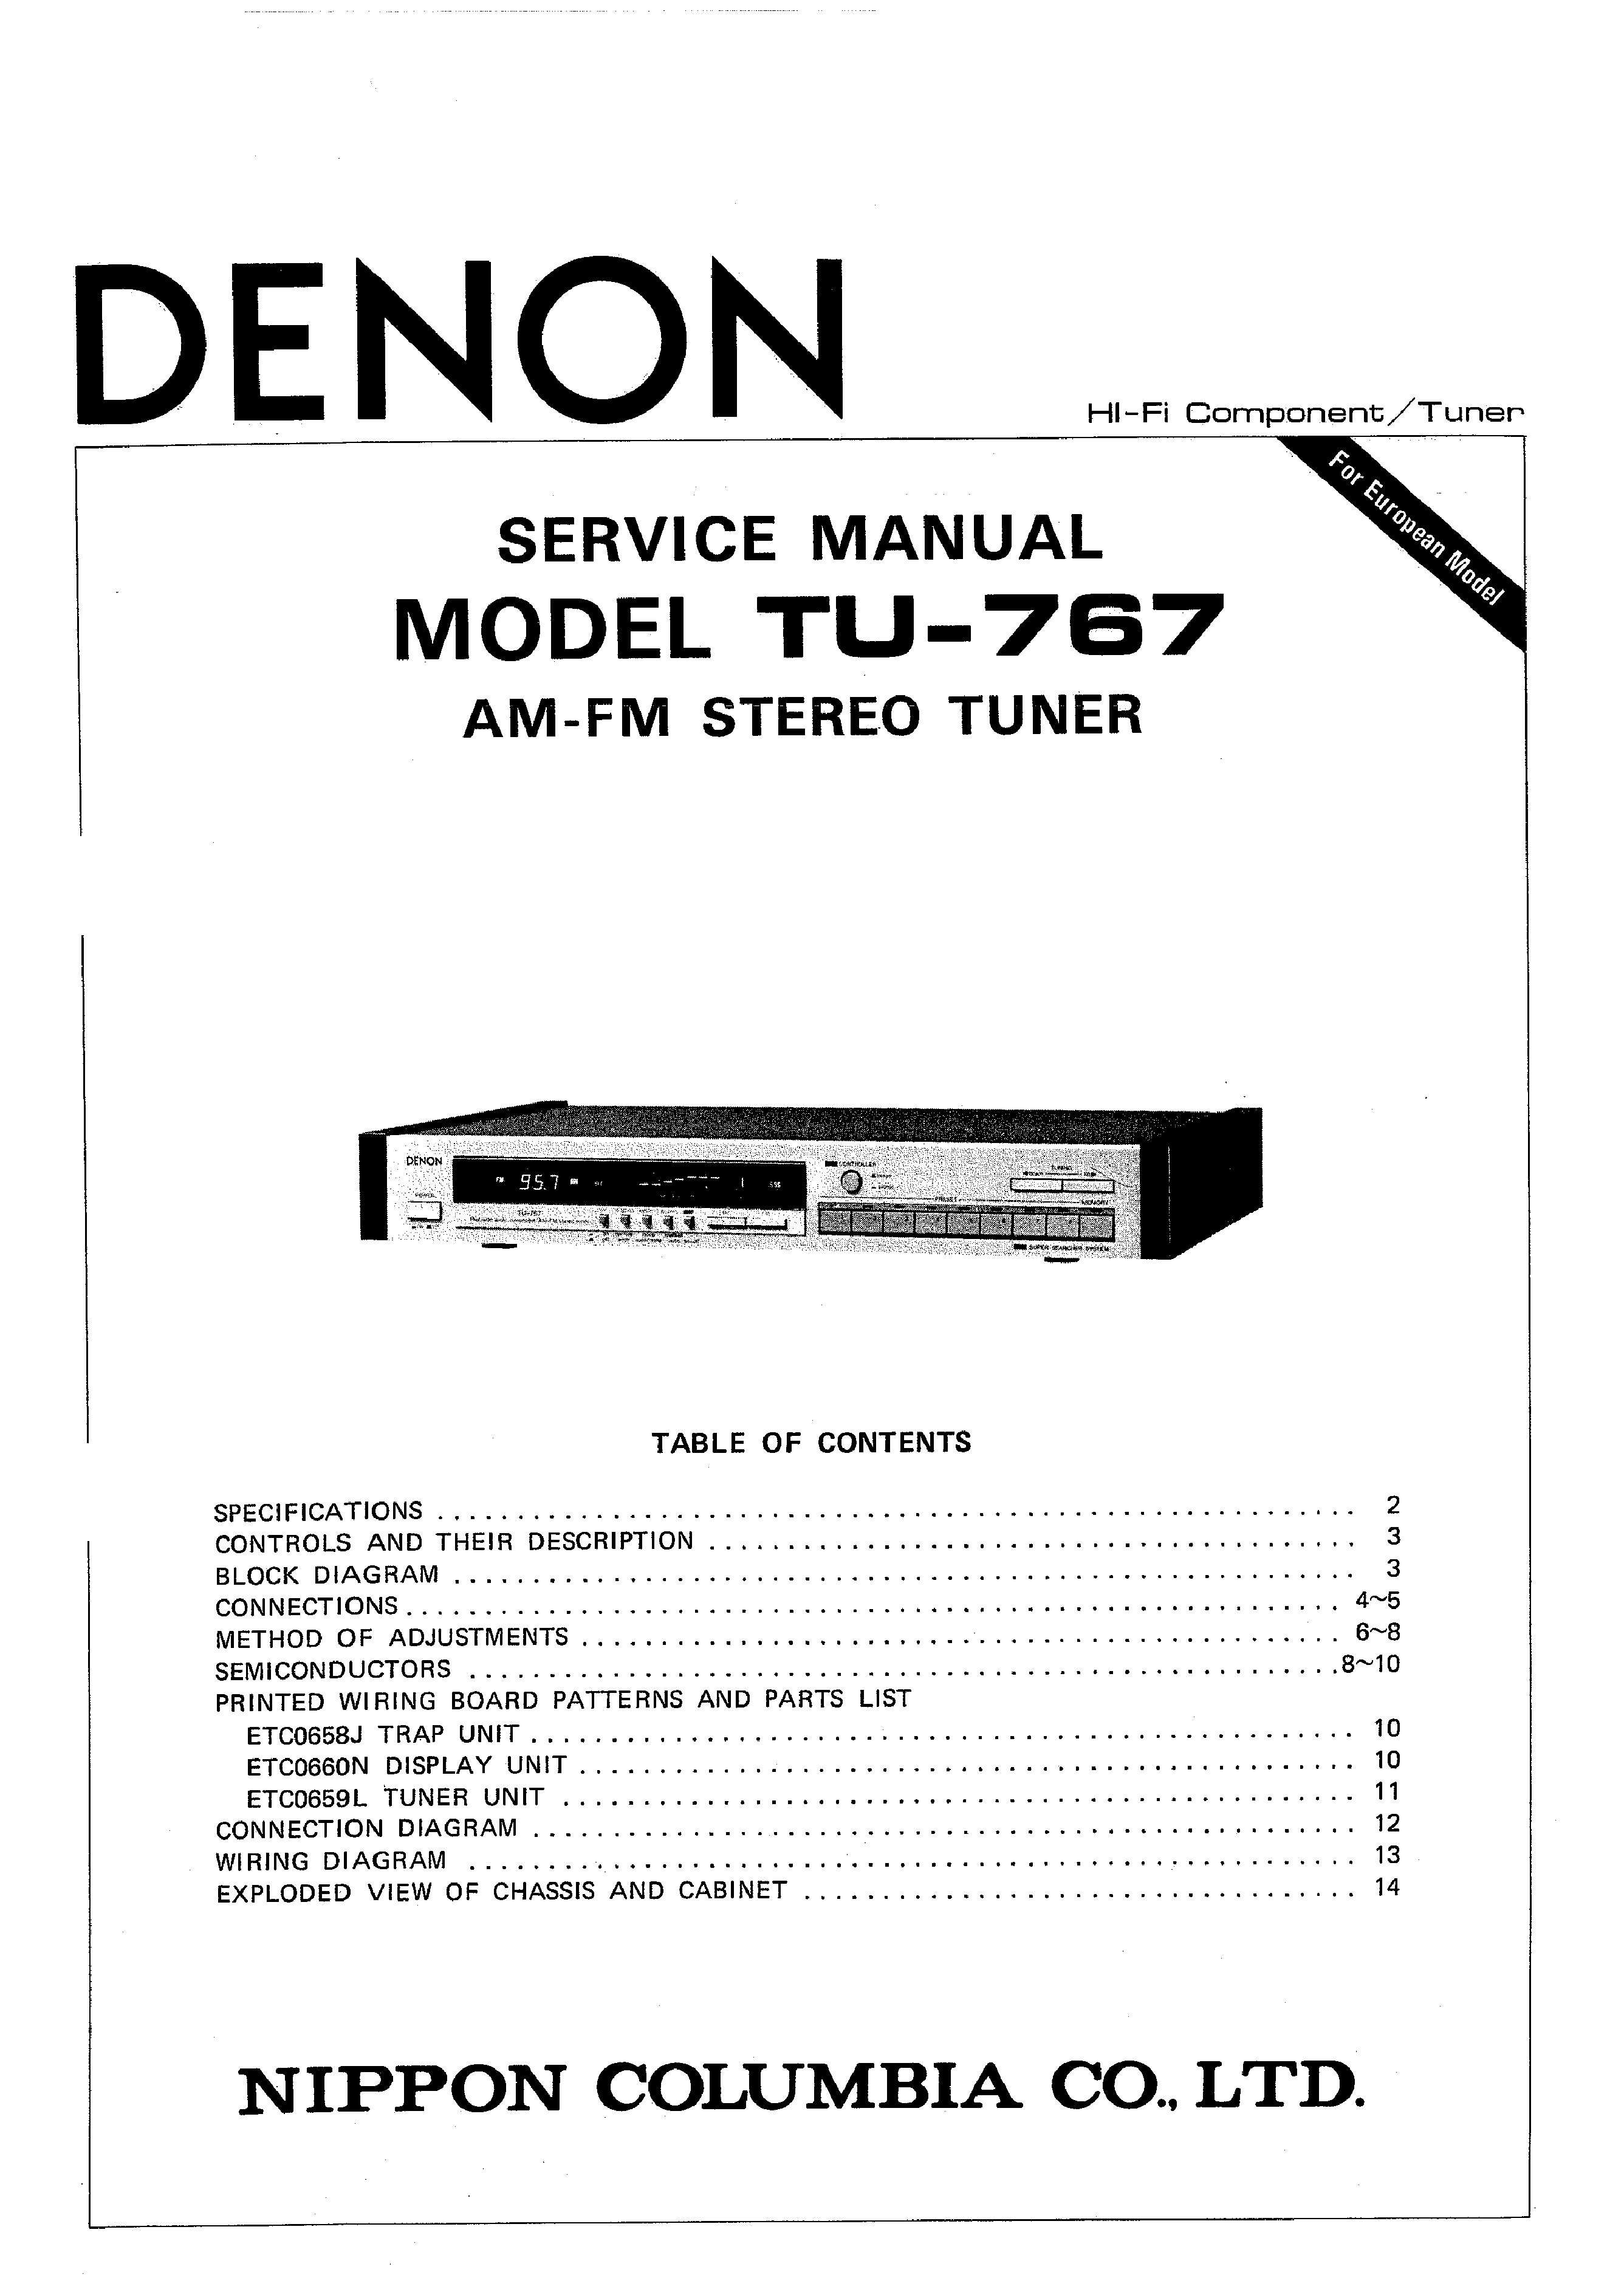 service manual for denon tu-767